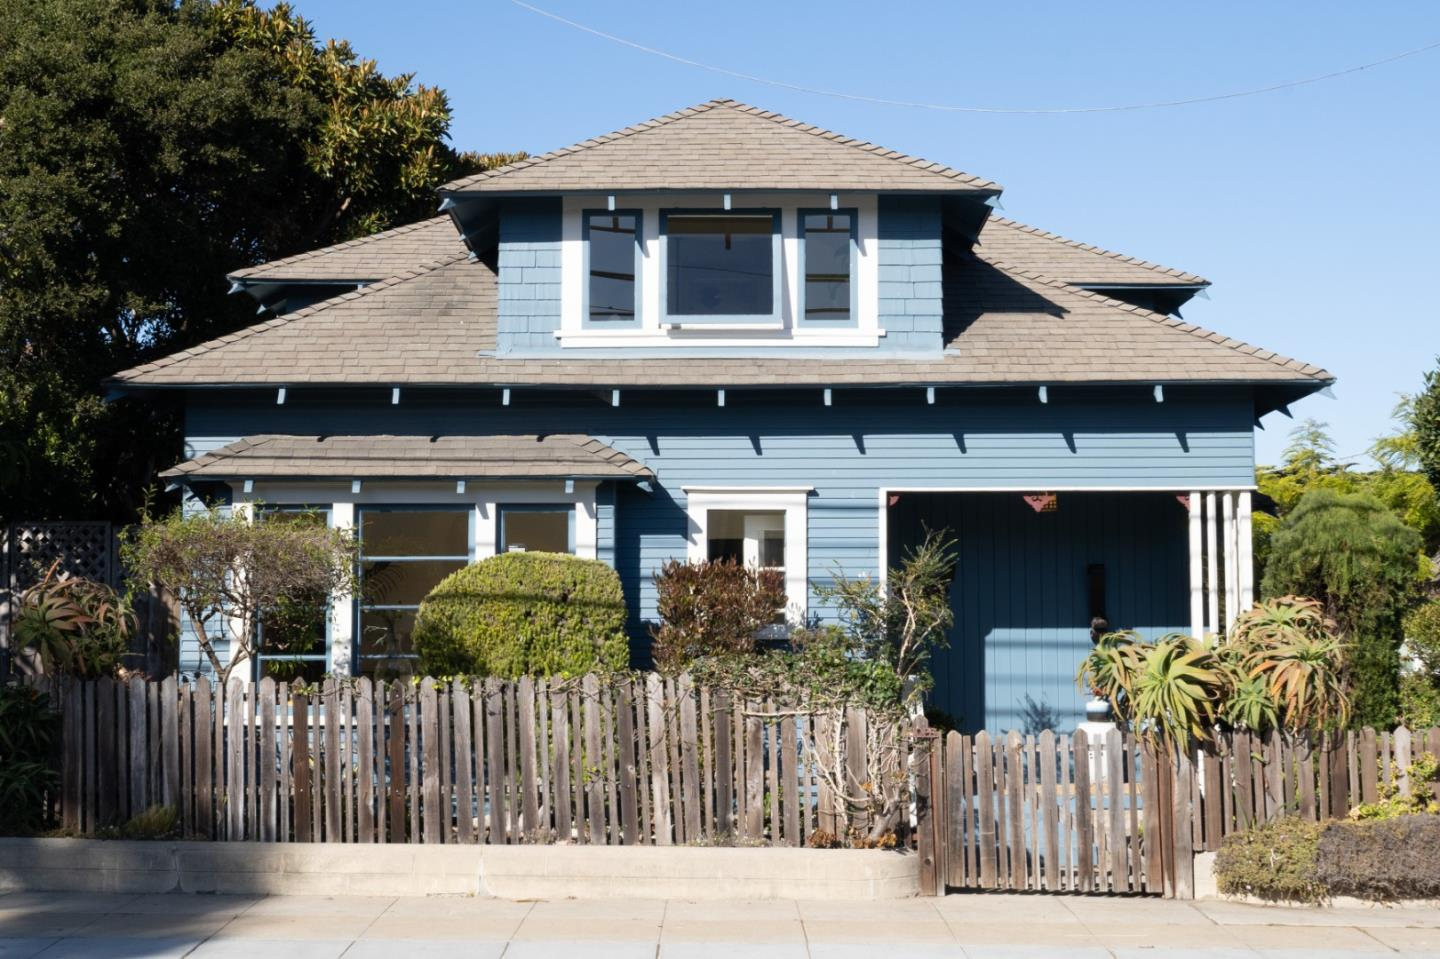 402 Central AVE, PACIFIC GROVE, CA 93950